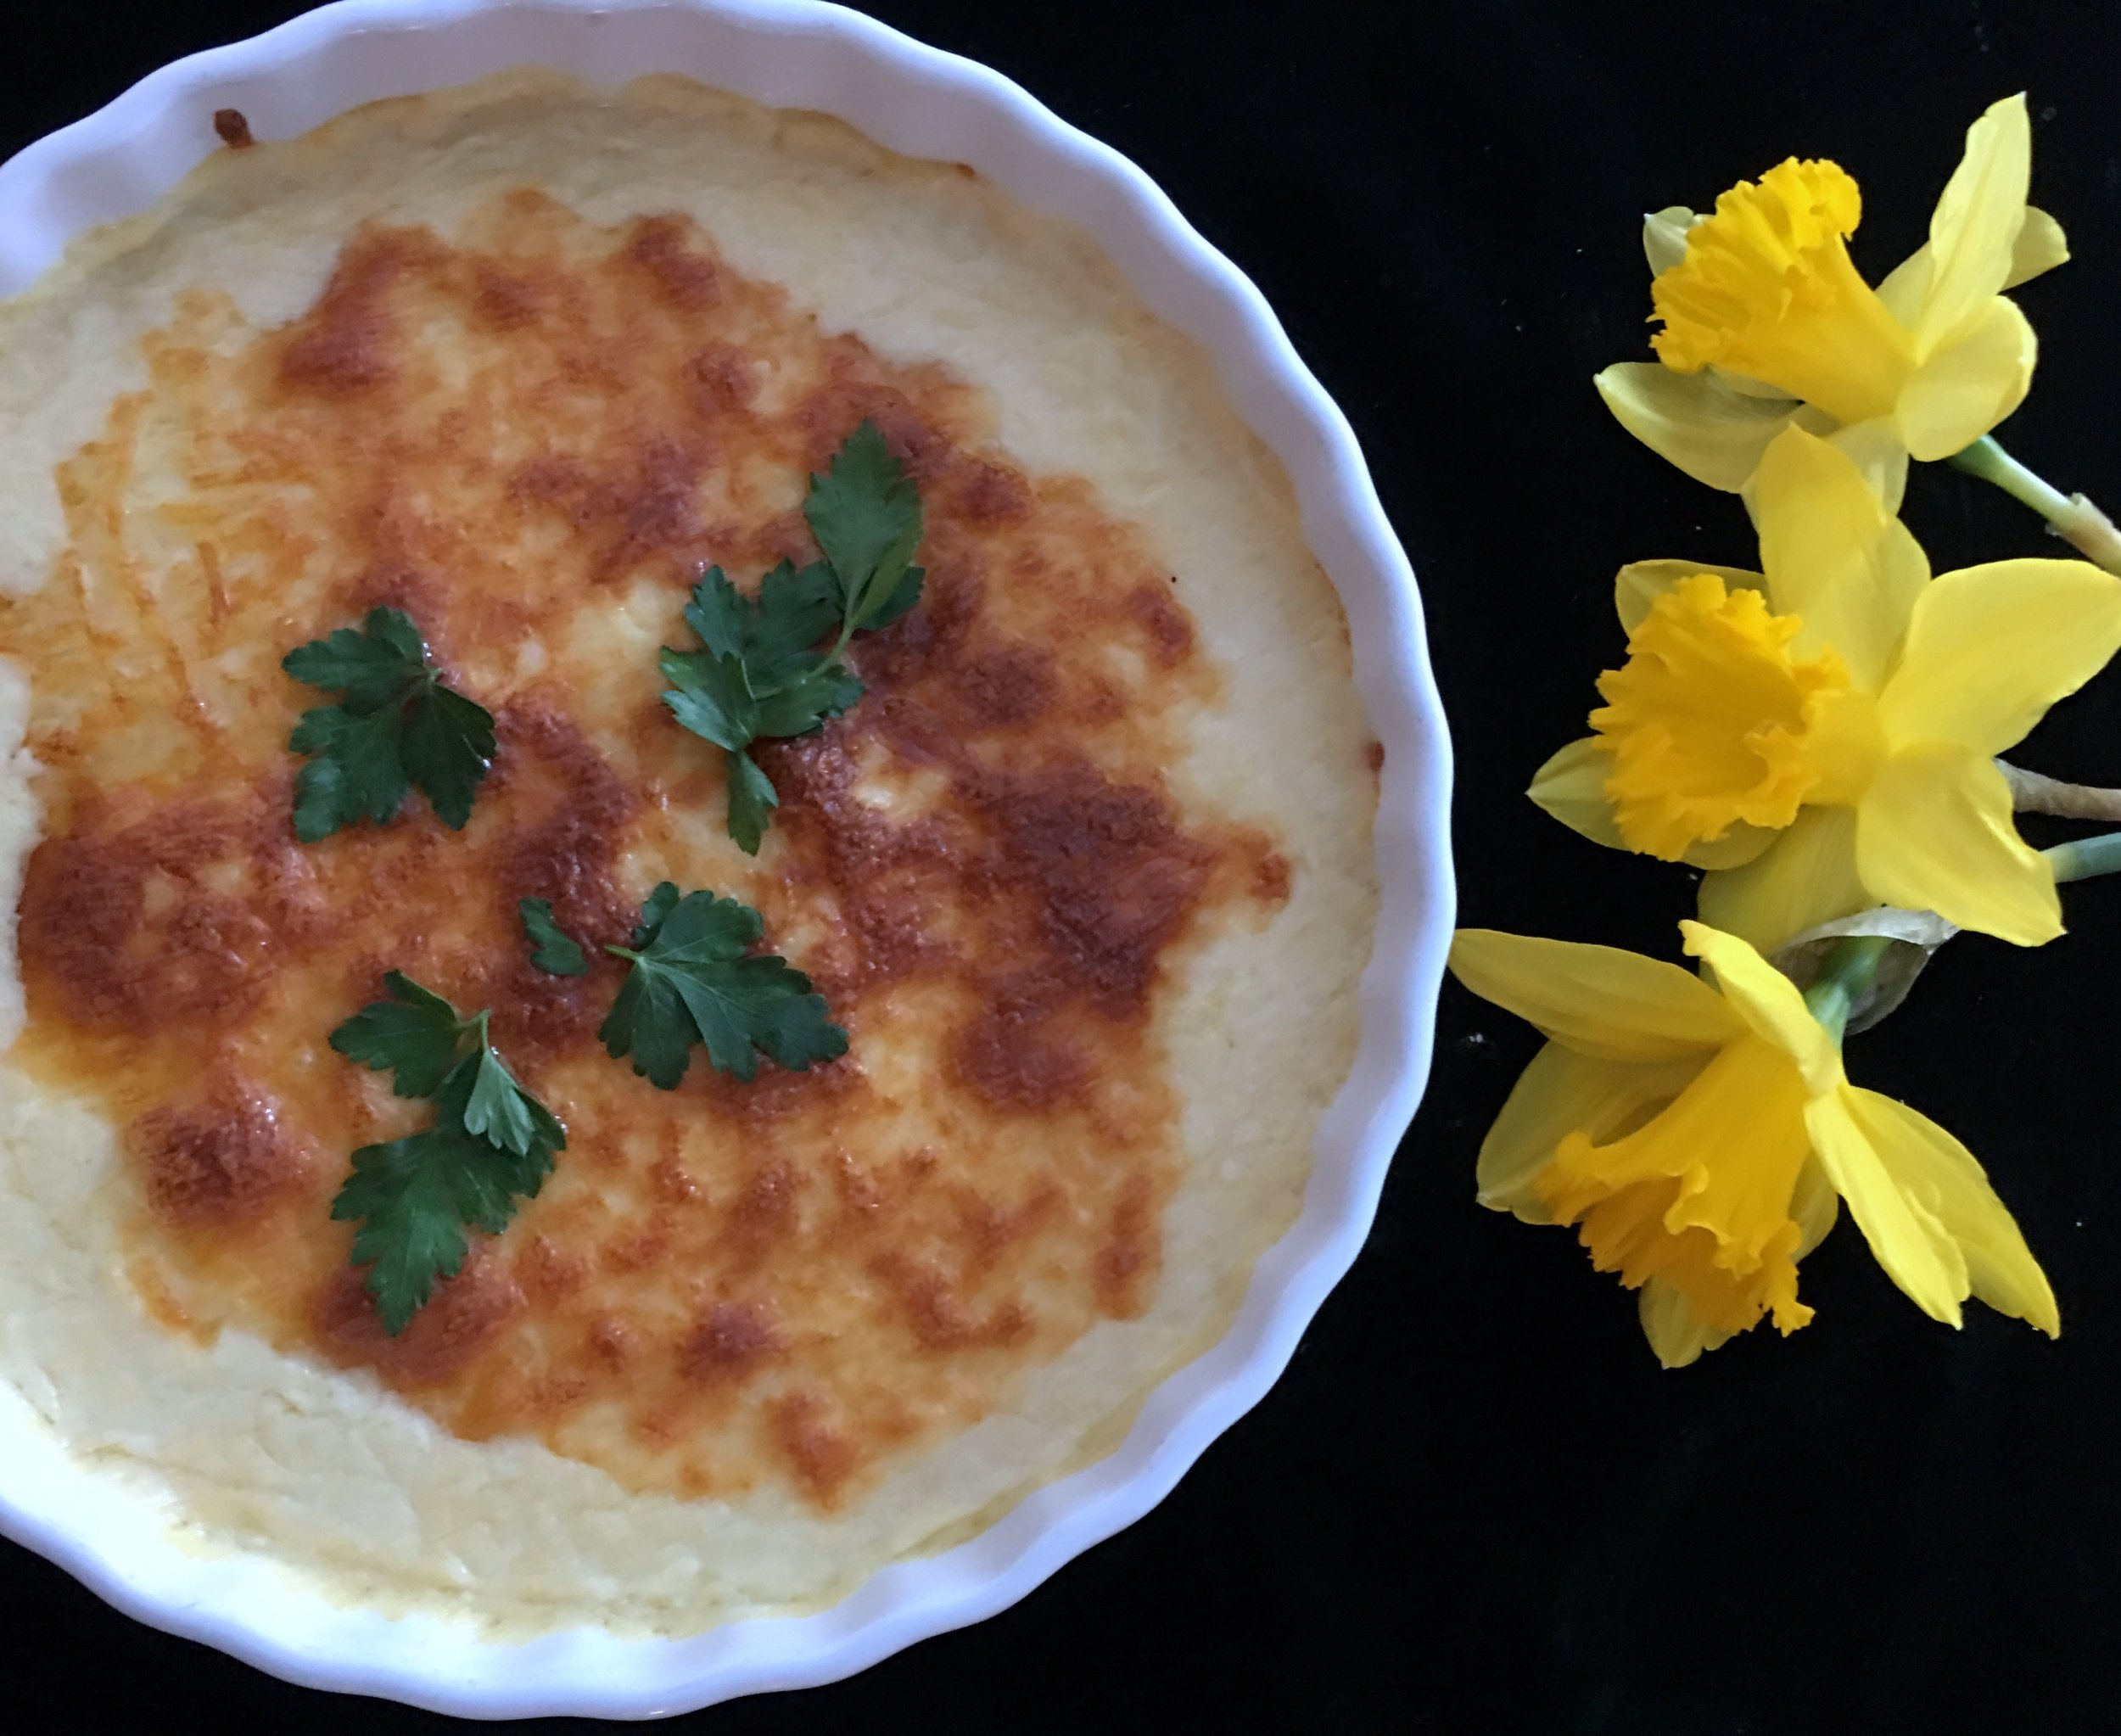 ©Polenta with Three Daffodils by Dena T Bray